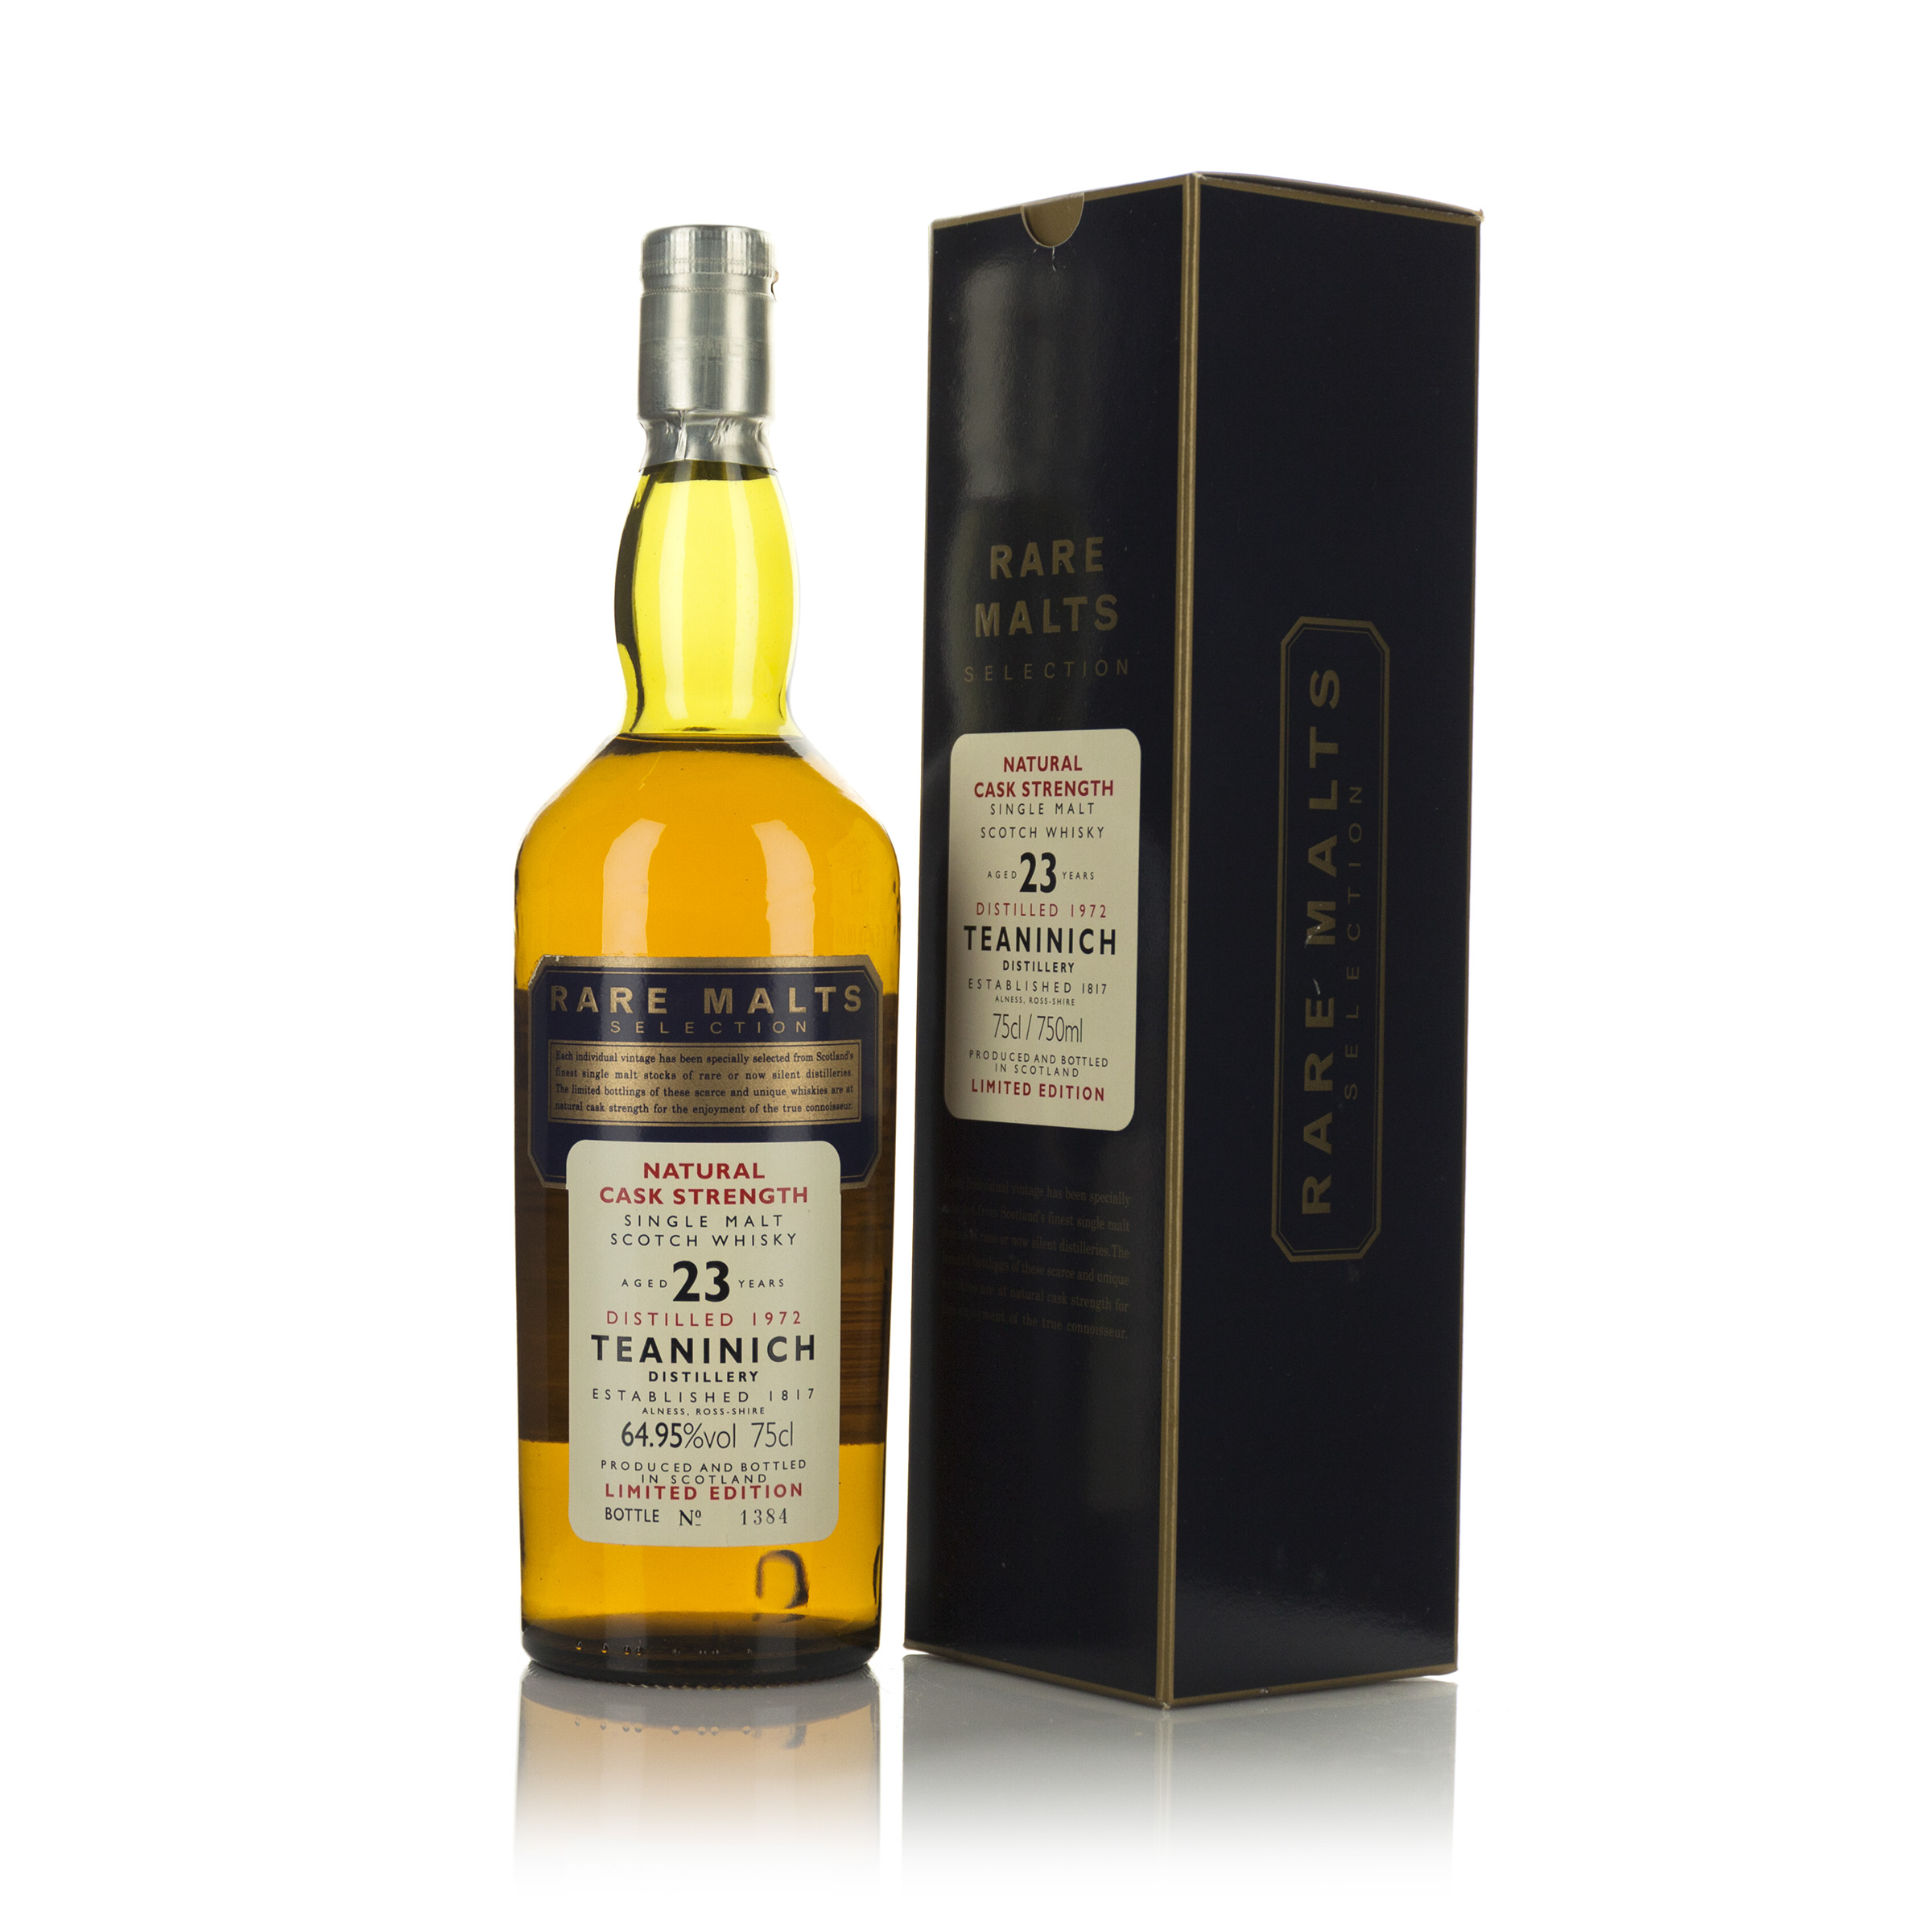 TEANINICH SINGLE MALT SCOTCH WHISKY 23 YEARS (ONE 750 ML)